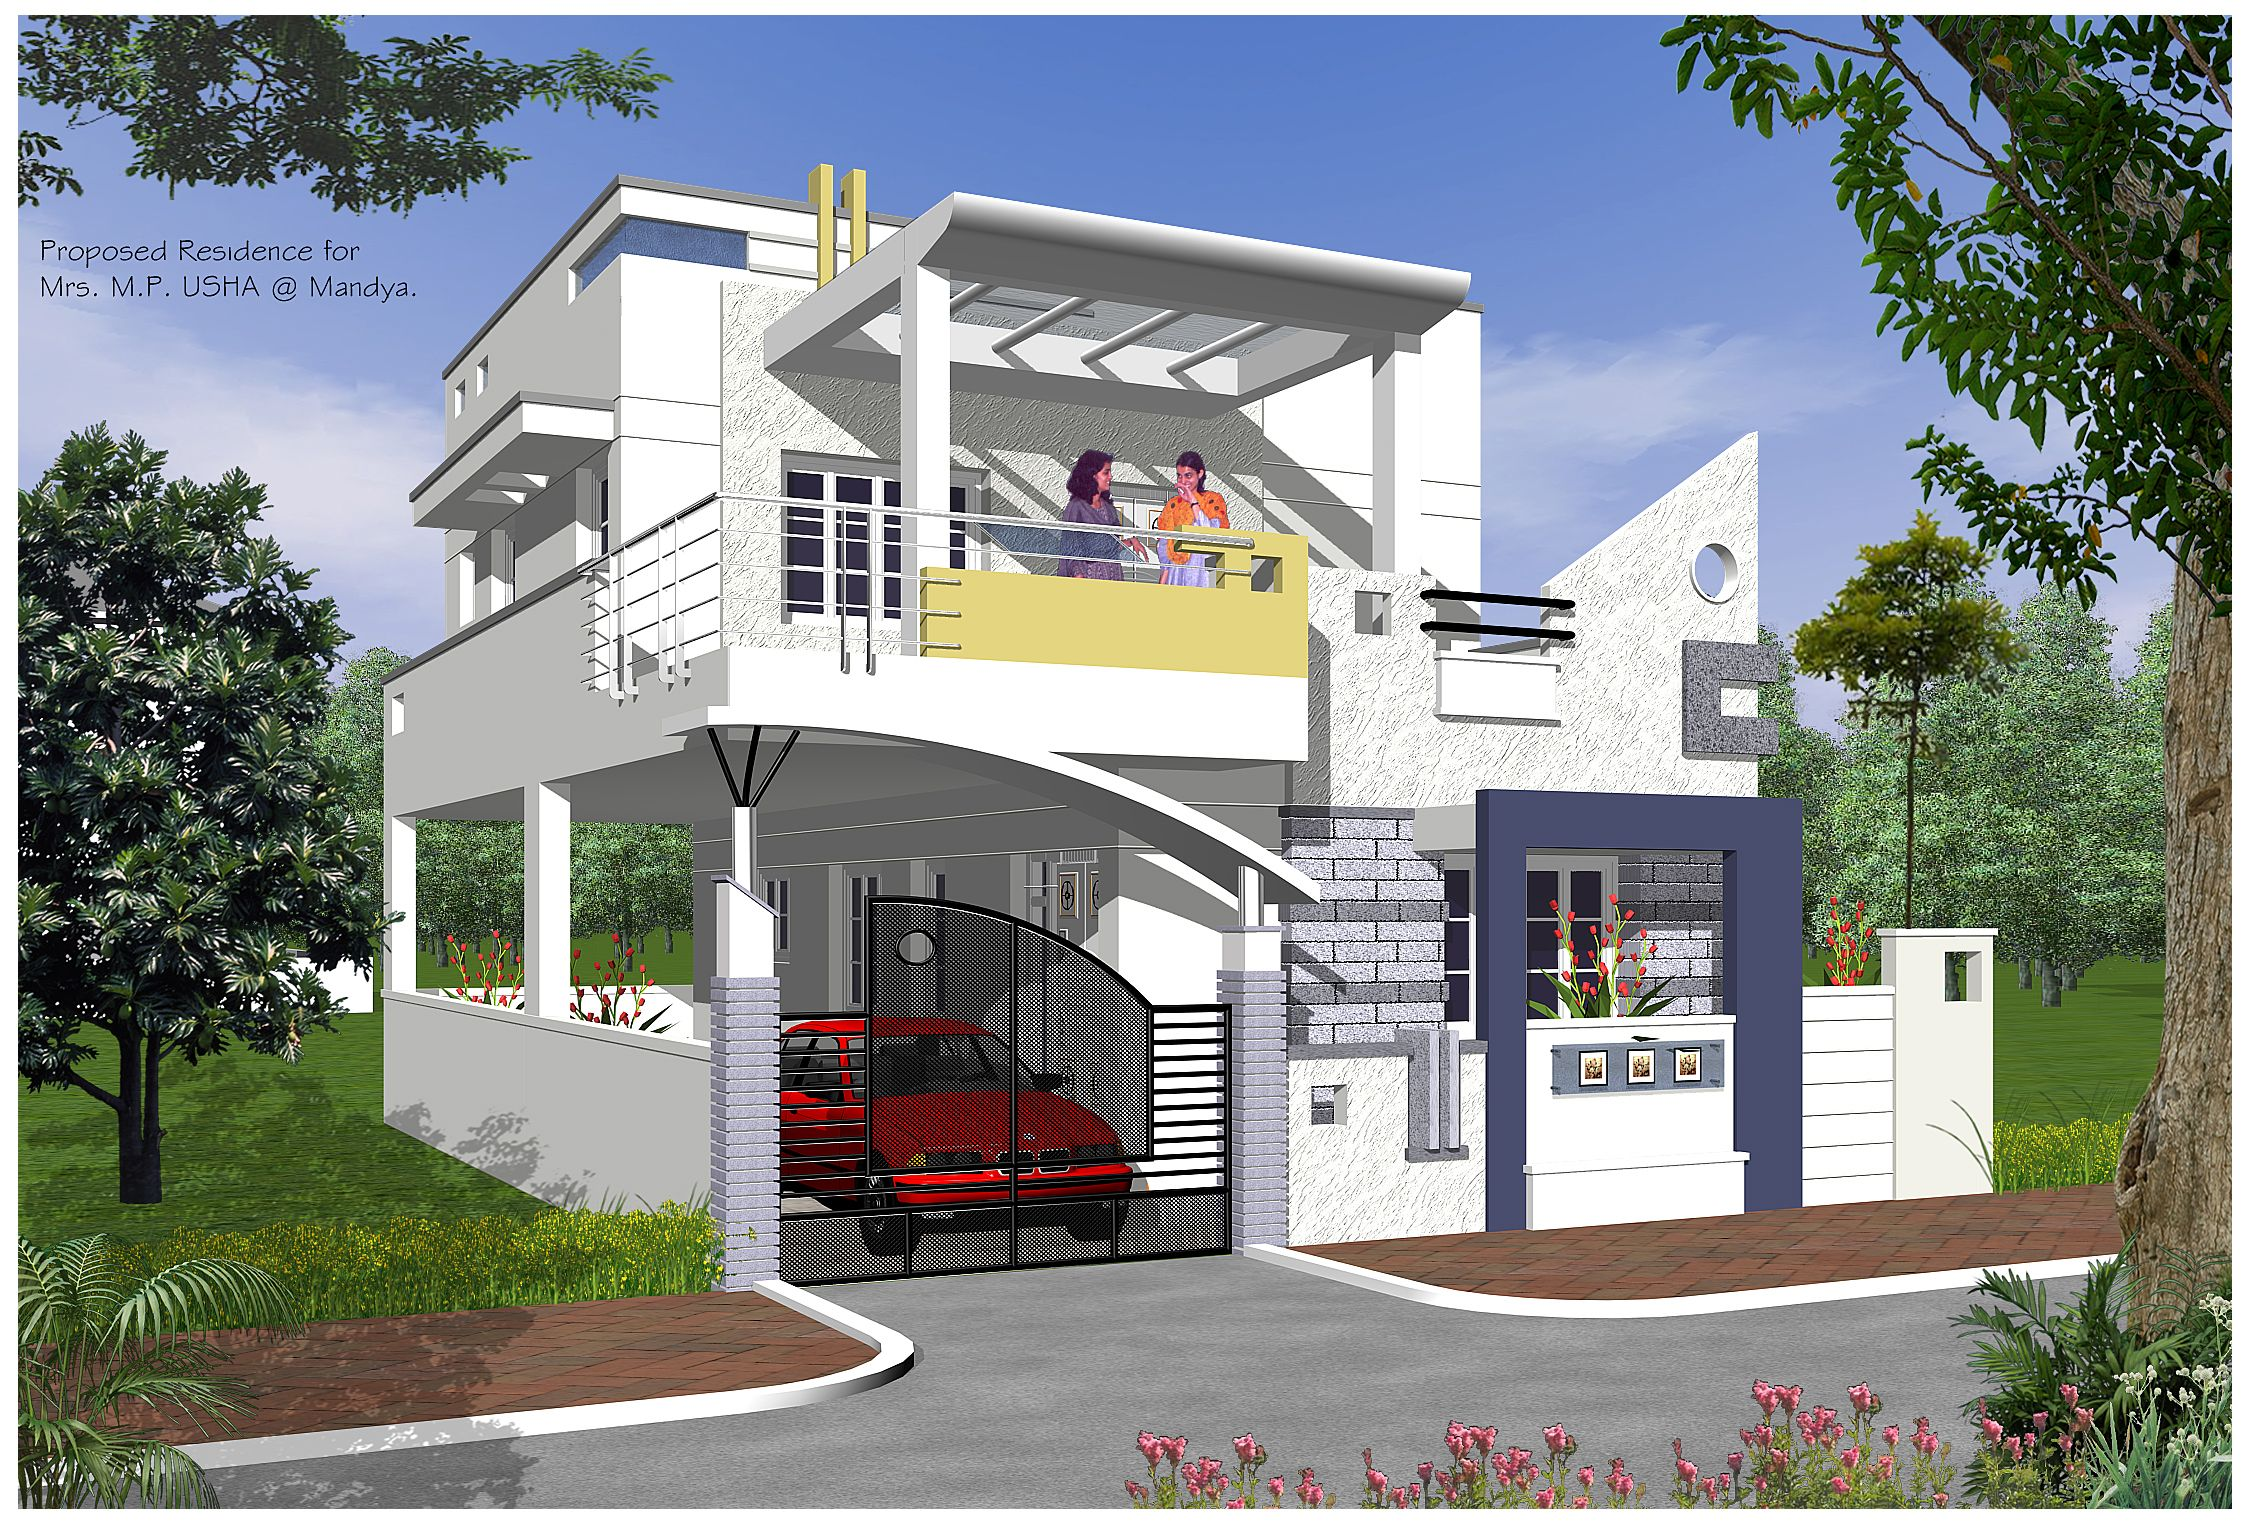 17 Best ideas about Indian House Plans on Pinterest Vastu